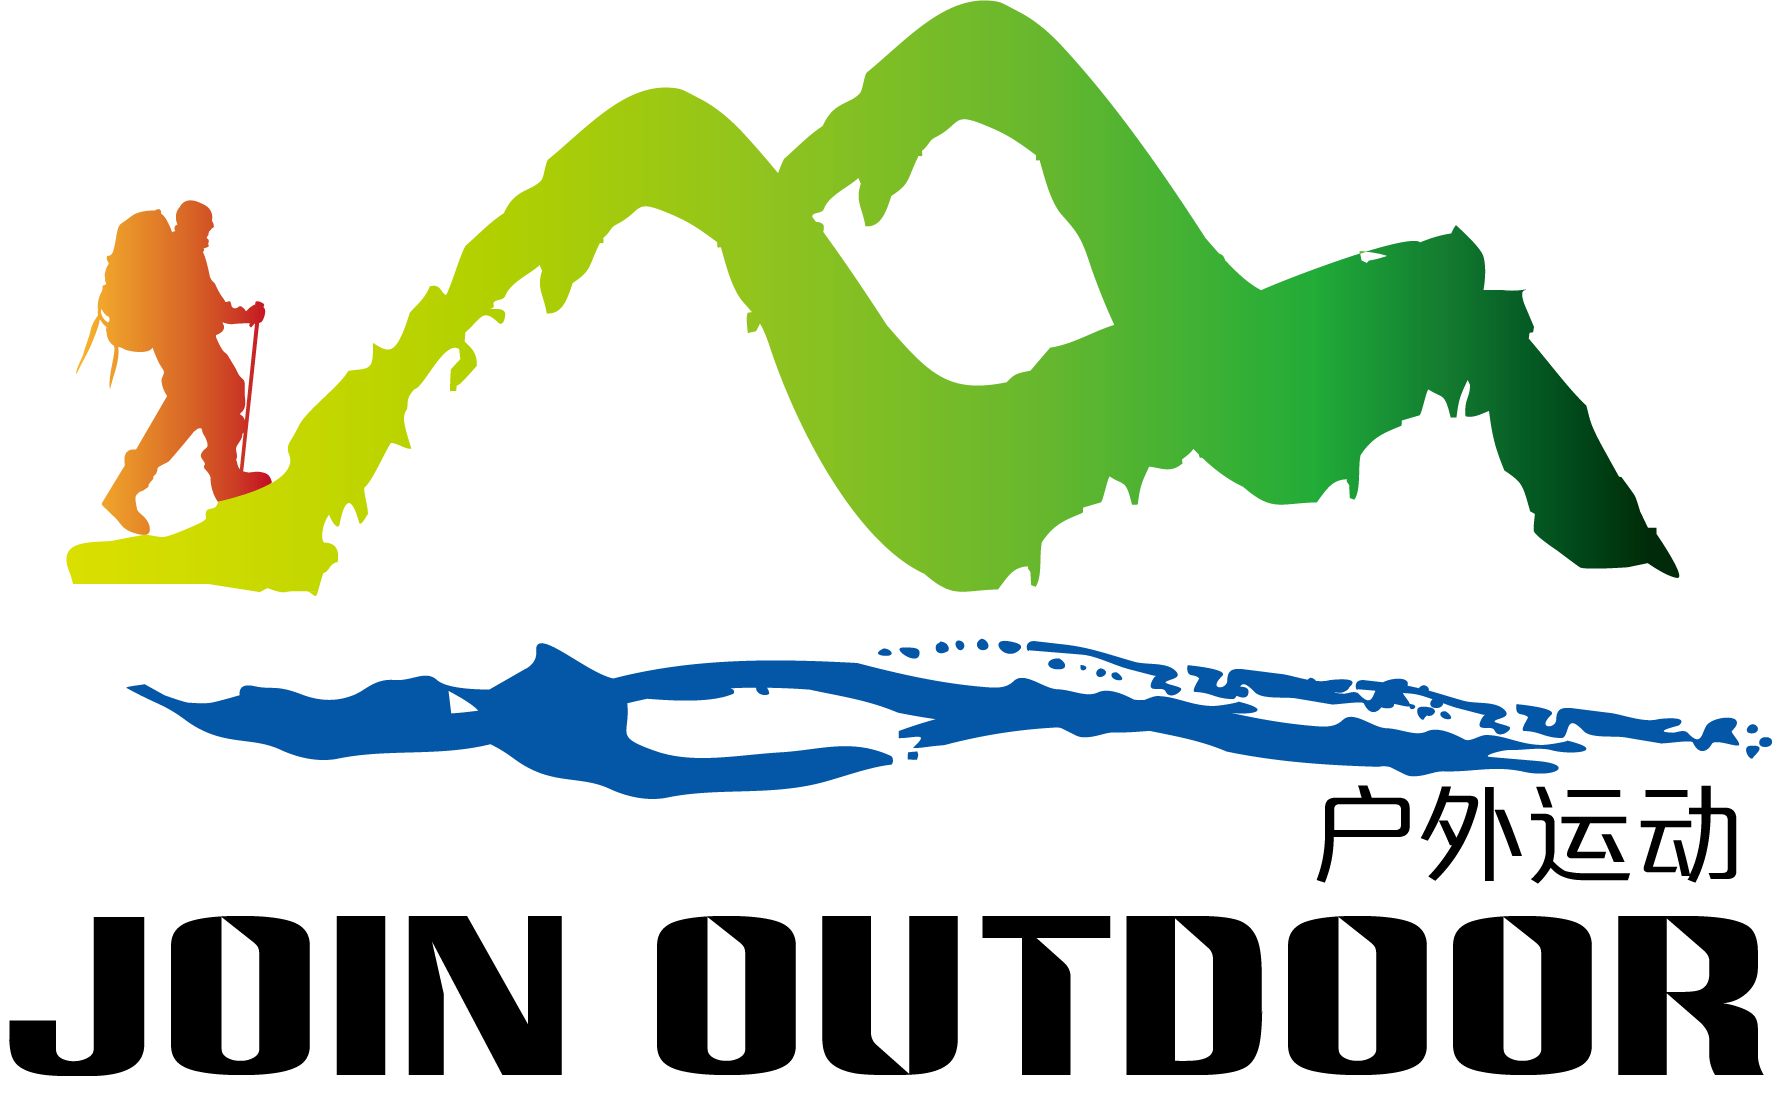 www.joinoutdoor.com